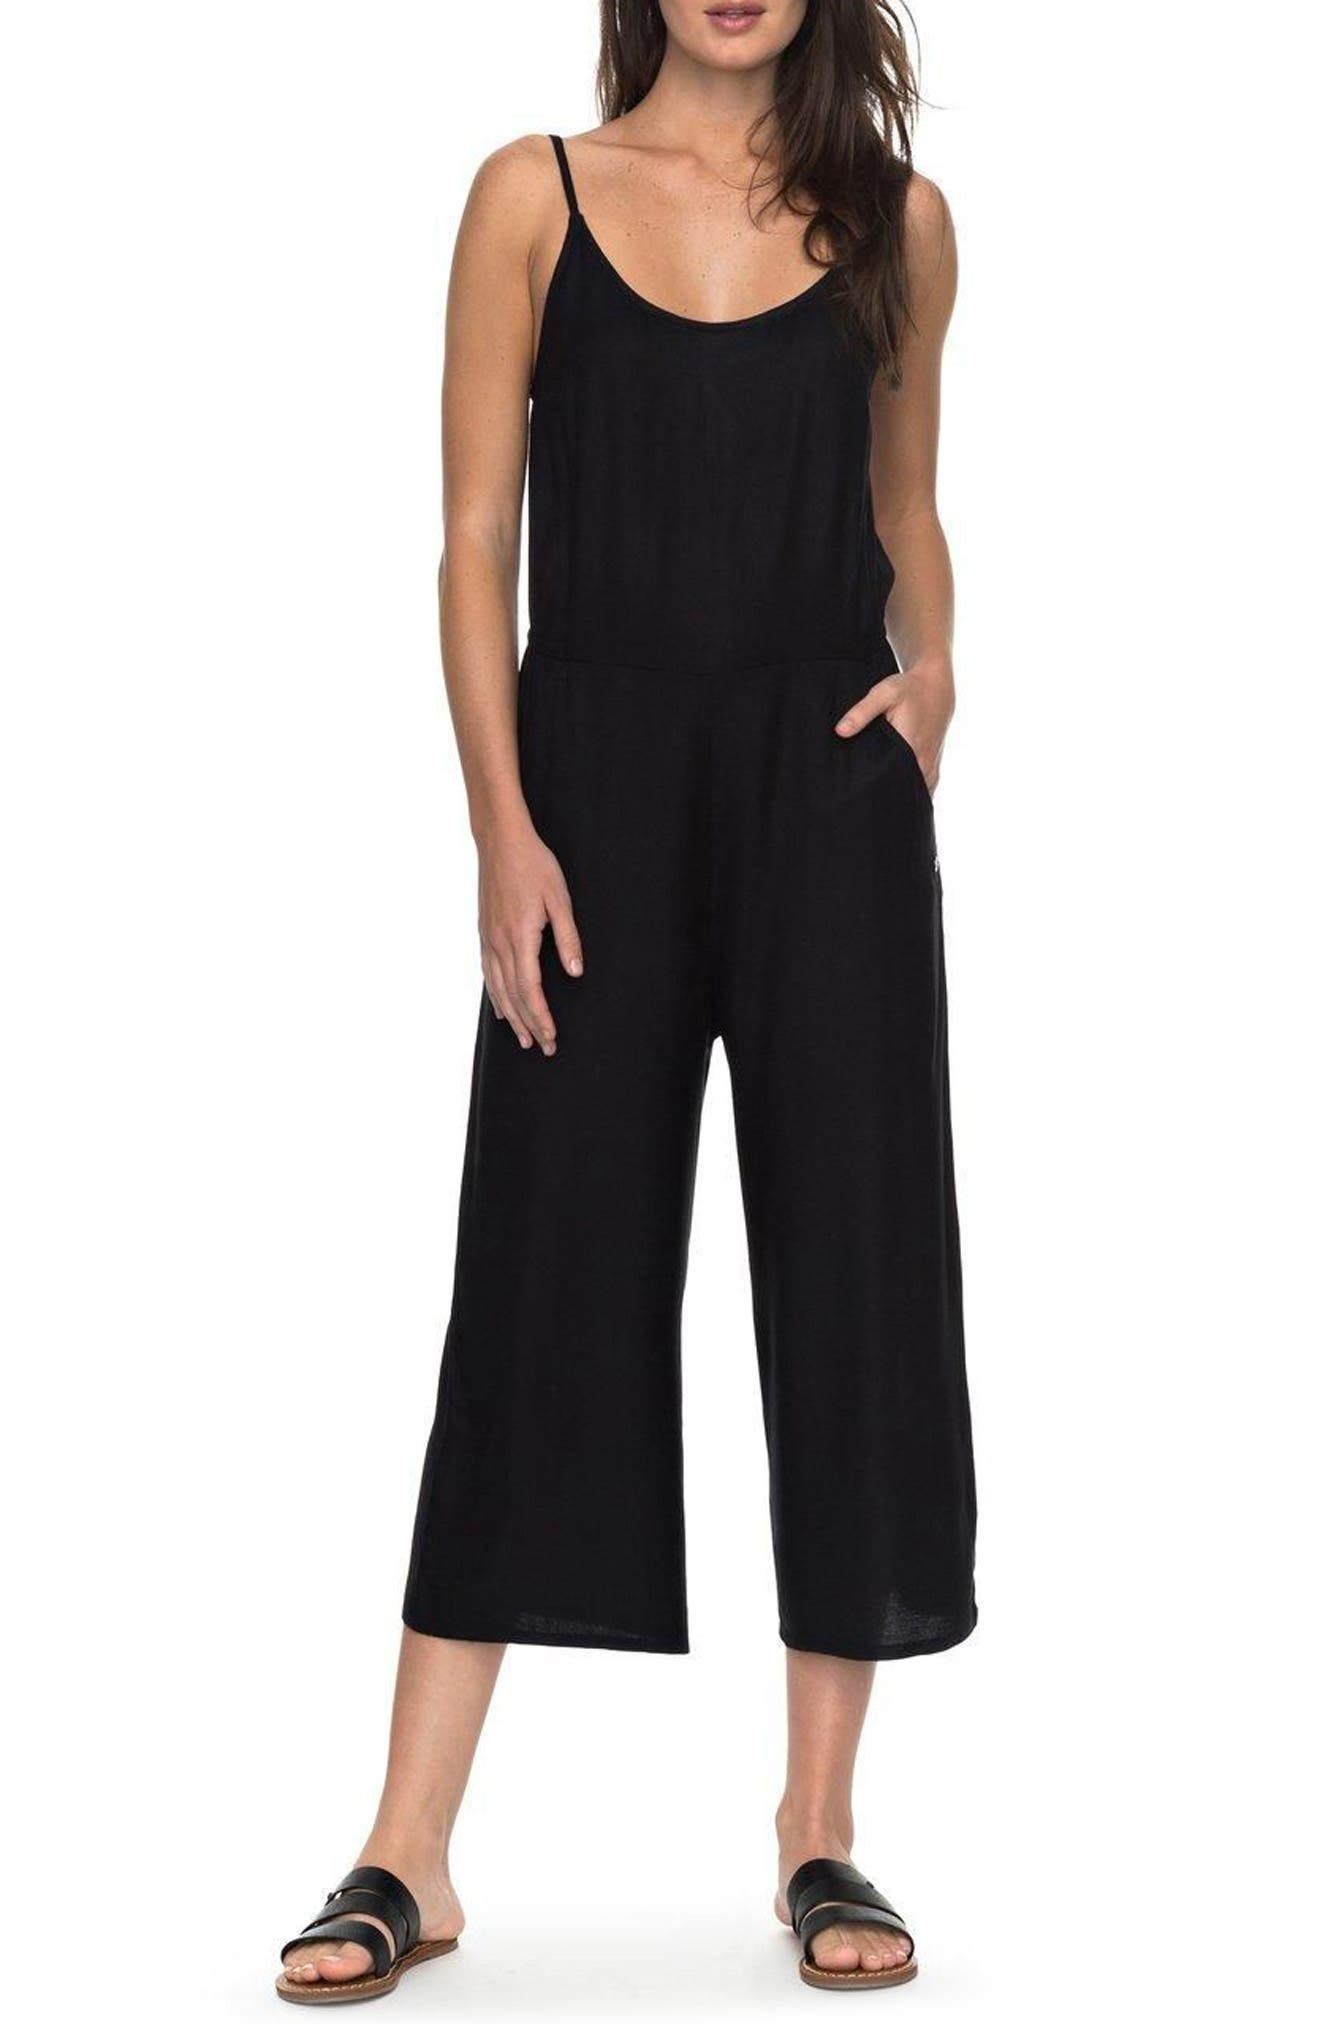 Roxy Great Feeling in It Jumpsuit